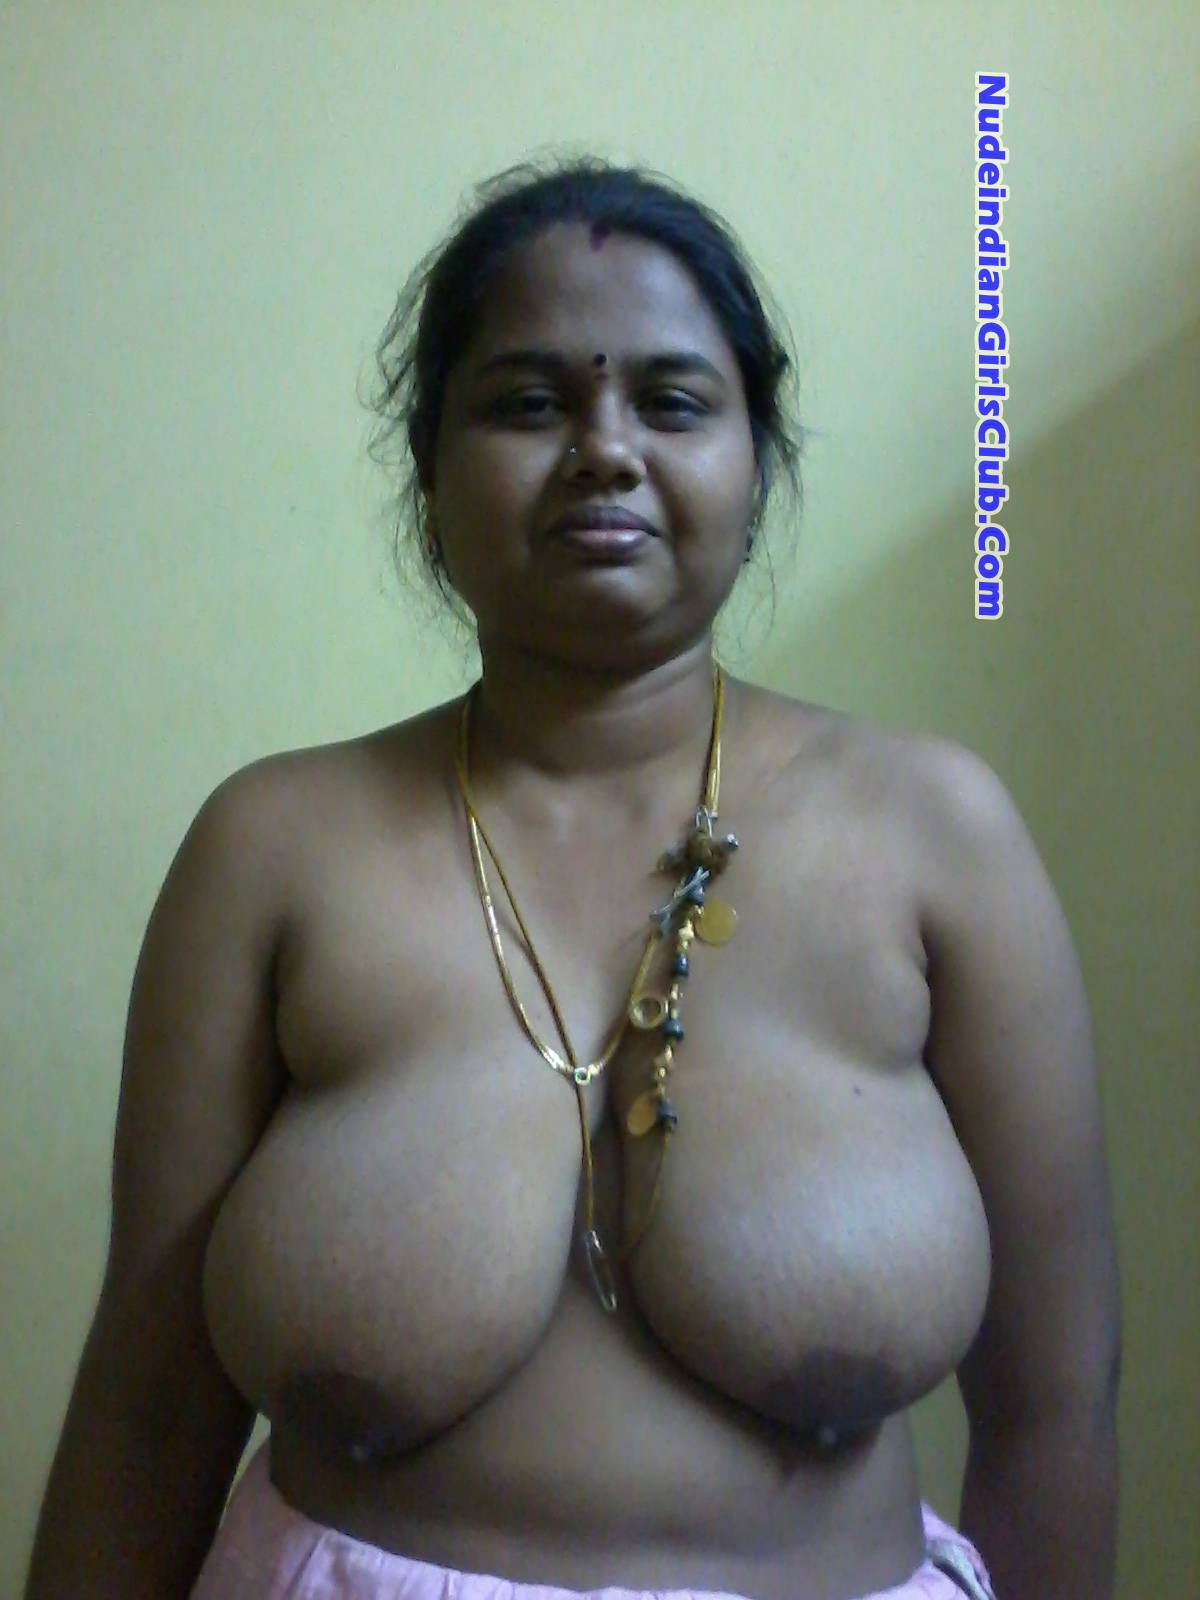 thamil aunty blowjob photos